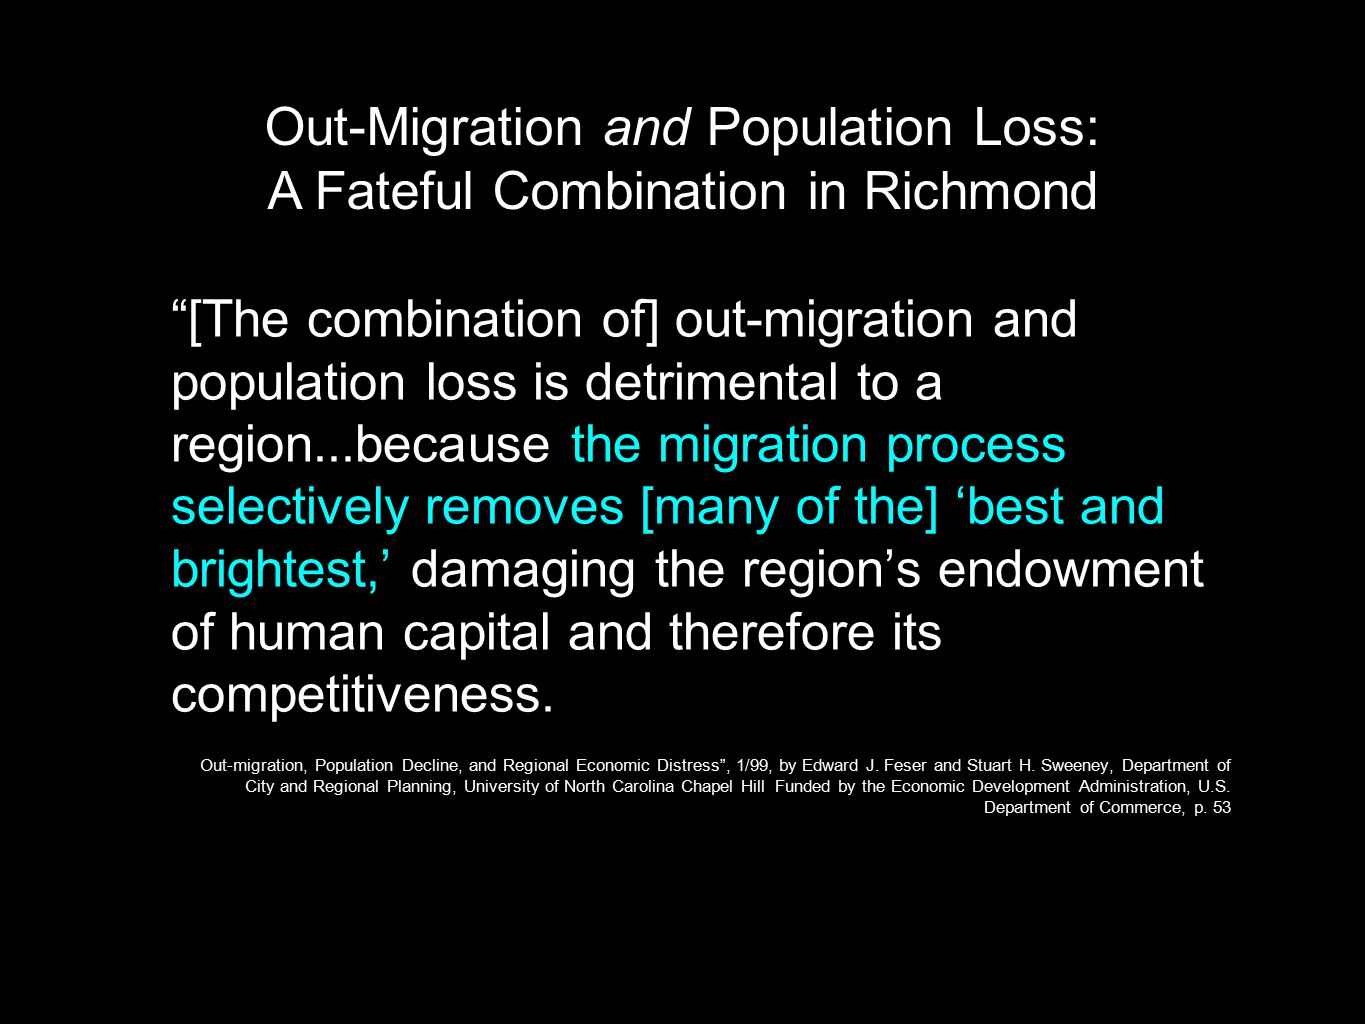 [The combination of] out-migration and population loss is detrimental to a region...because the migration process selectively removes [many of the] 'best and brightest,' damaging the region's endowment of human capital and therefore its competitiveness.